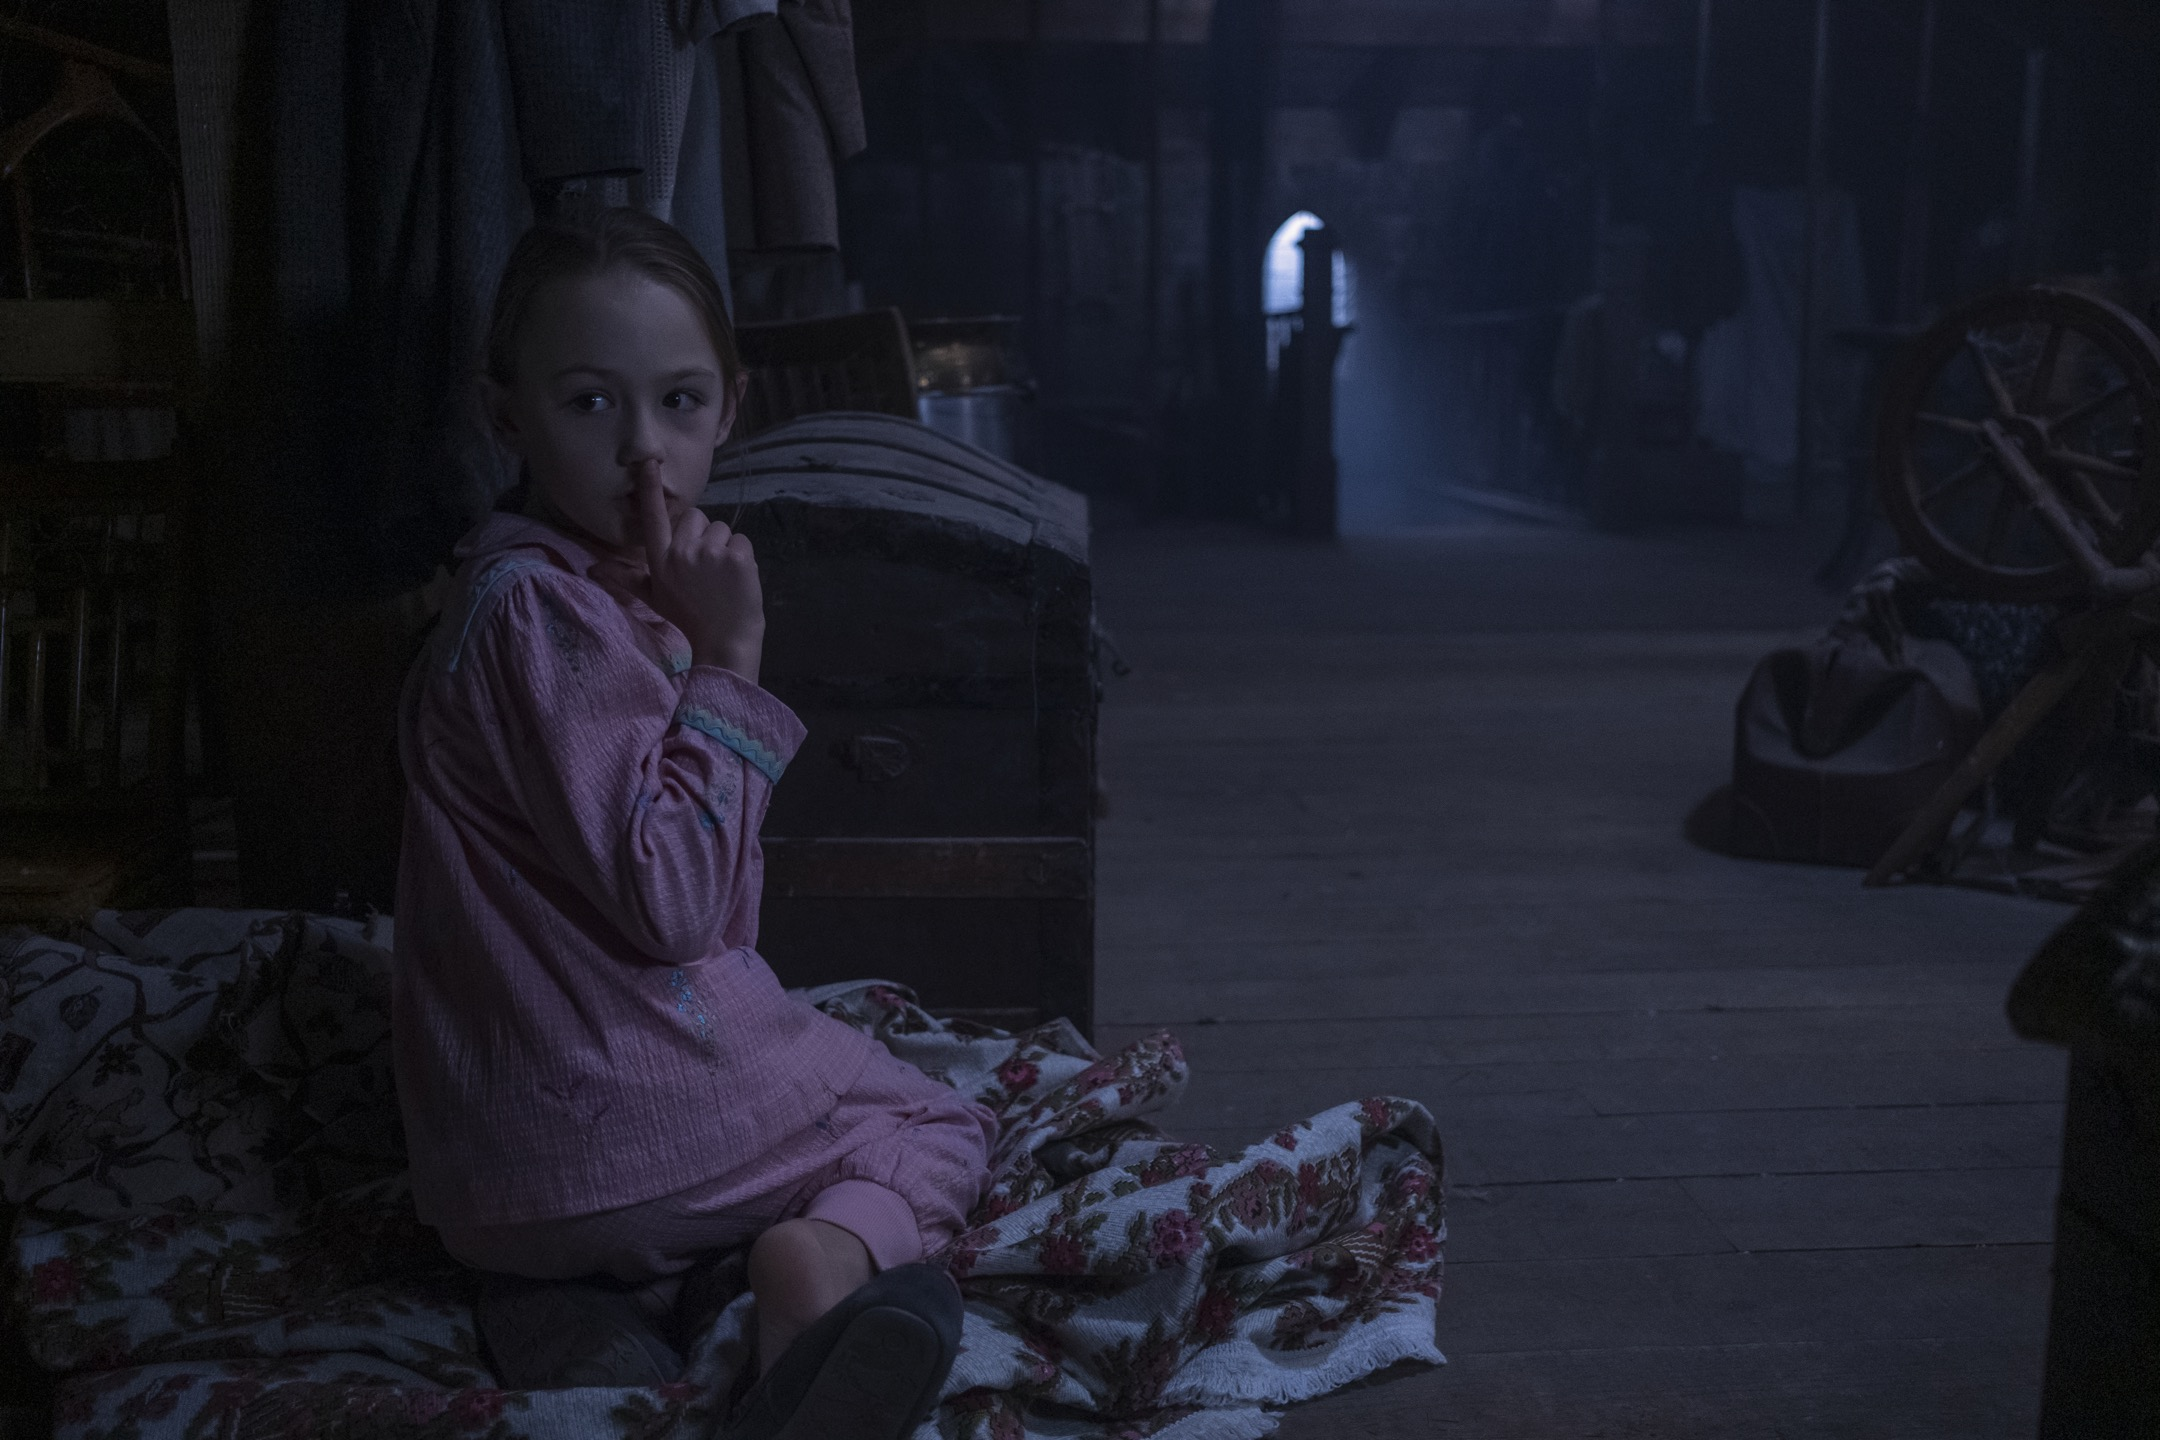 THE HAUNTING OF BLY MANOR (L to R) AMELIE BAE SMITH as FLORA in episode, 202 of THE HAUNTING OF BLY MANOR. Cr. EIKE SCHROTER/NETFLIX © 2020